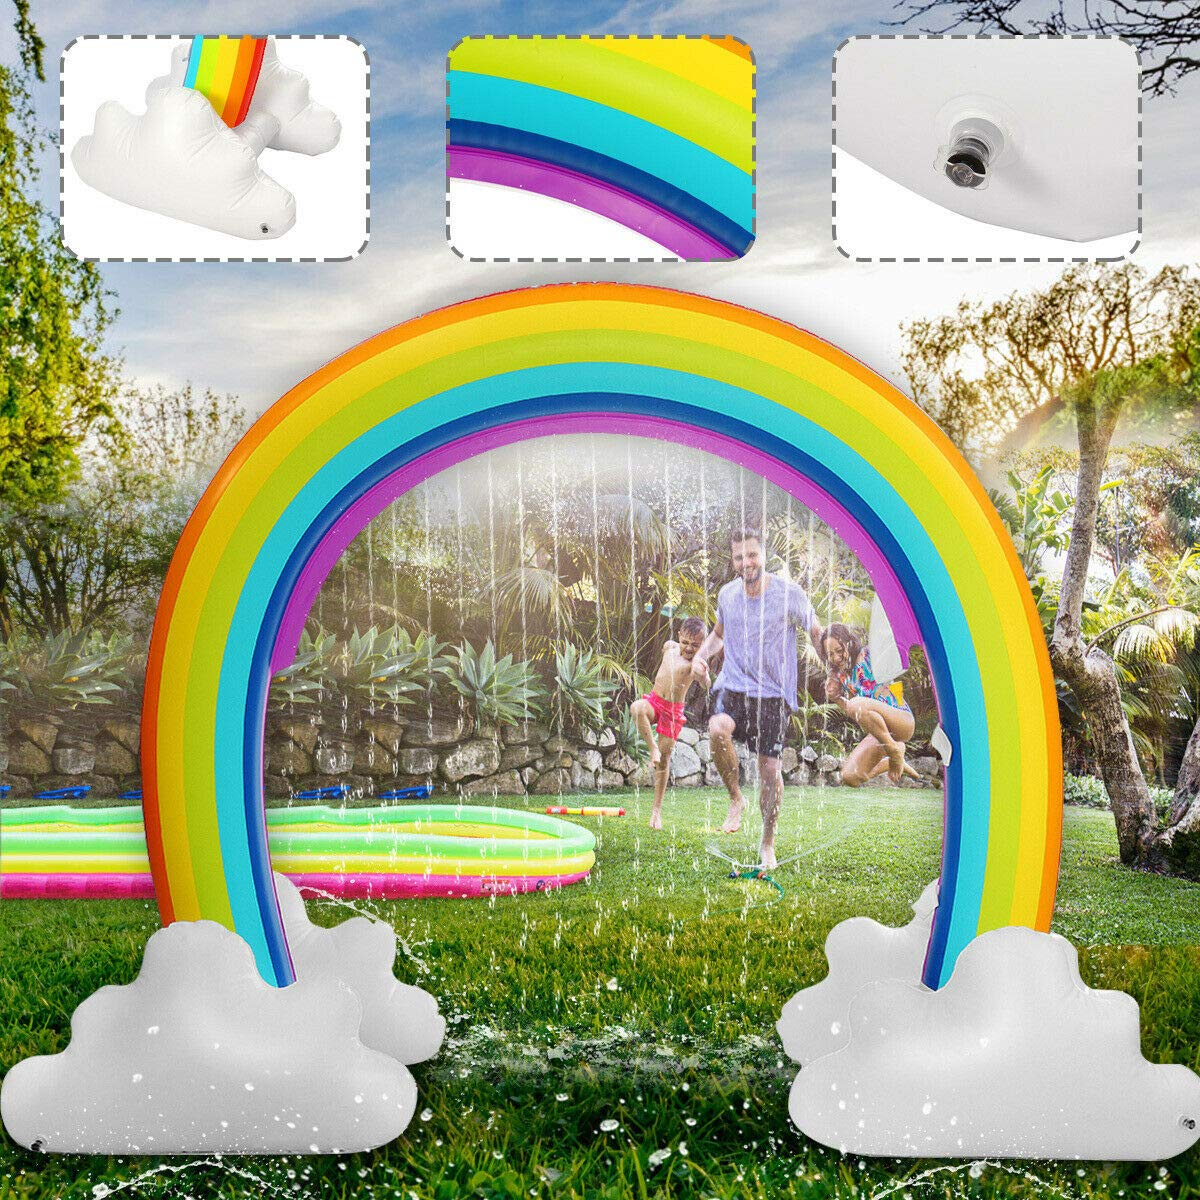 MerryXD Rainbow Sprinkler,Giant Water Inflatable Arch Sprinkler Outdoor Summer Toys for Kids